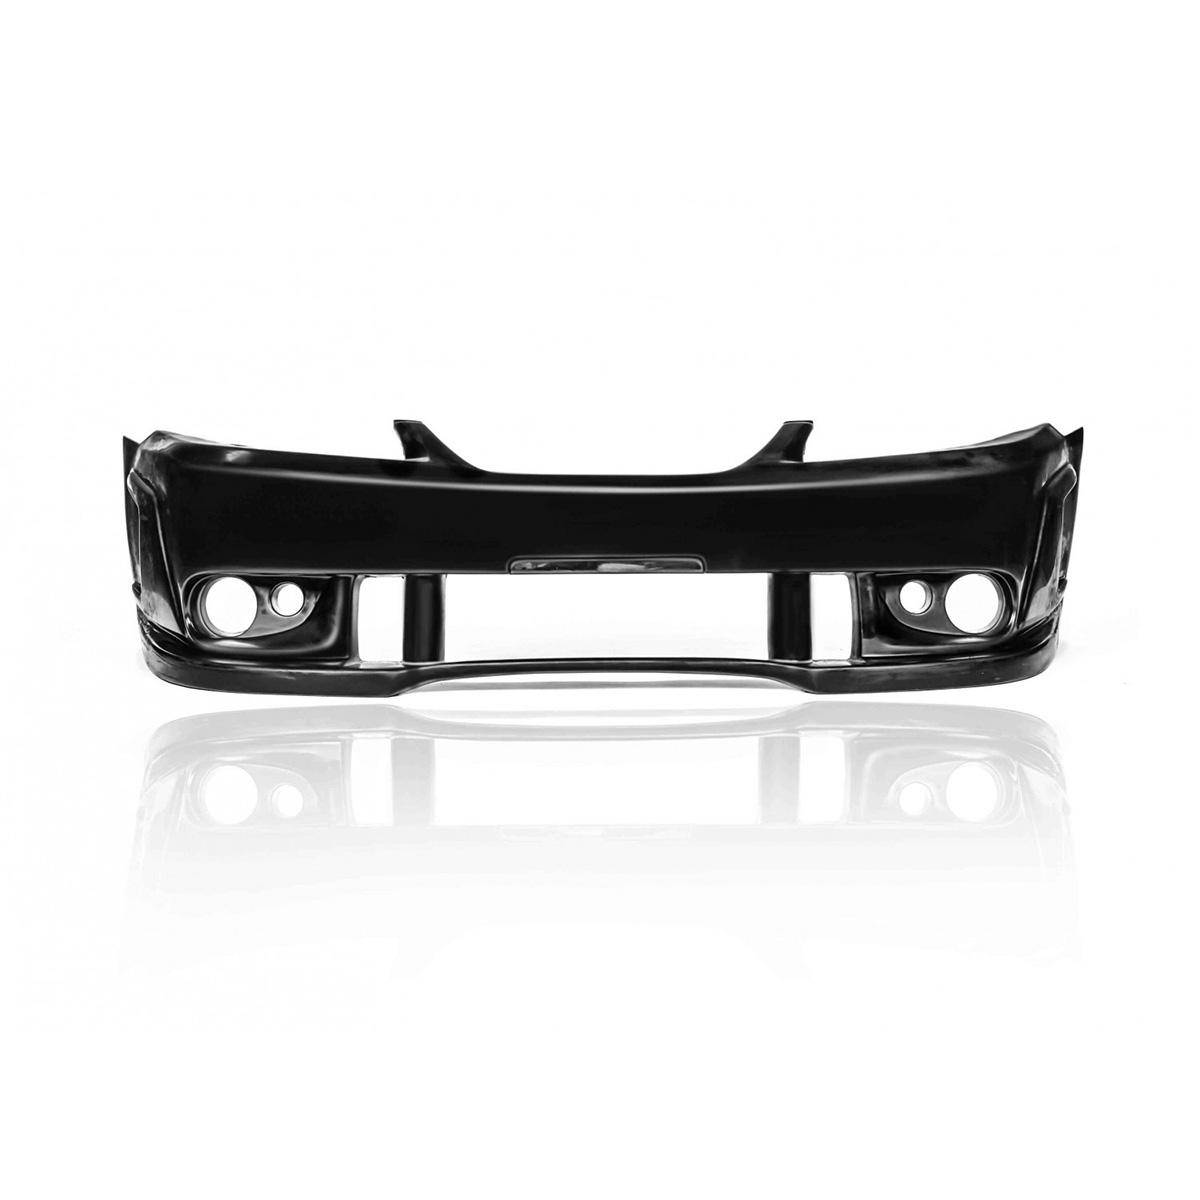 Ford Mustang 1999-2004 Spy 2 Style 1 Piece Polyurethane Front Bumper